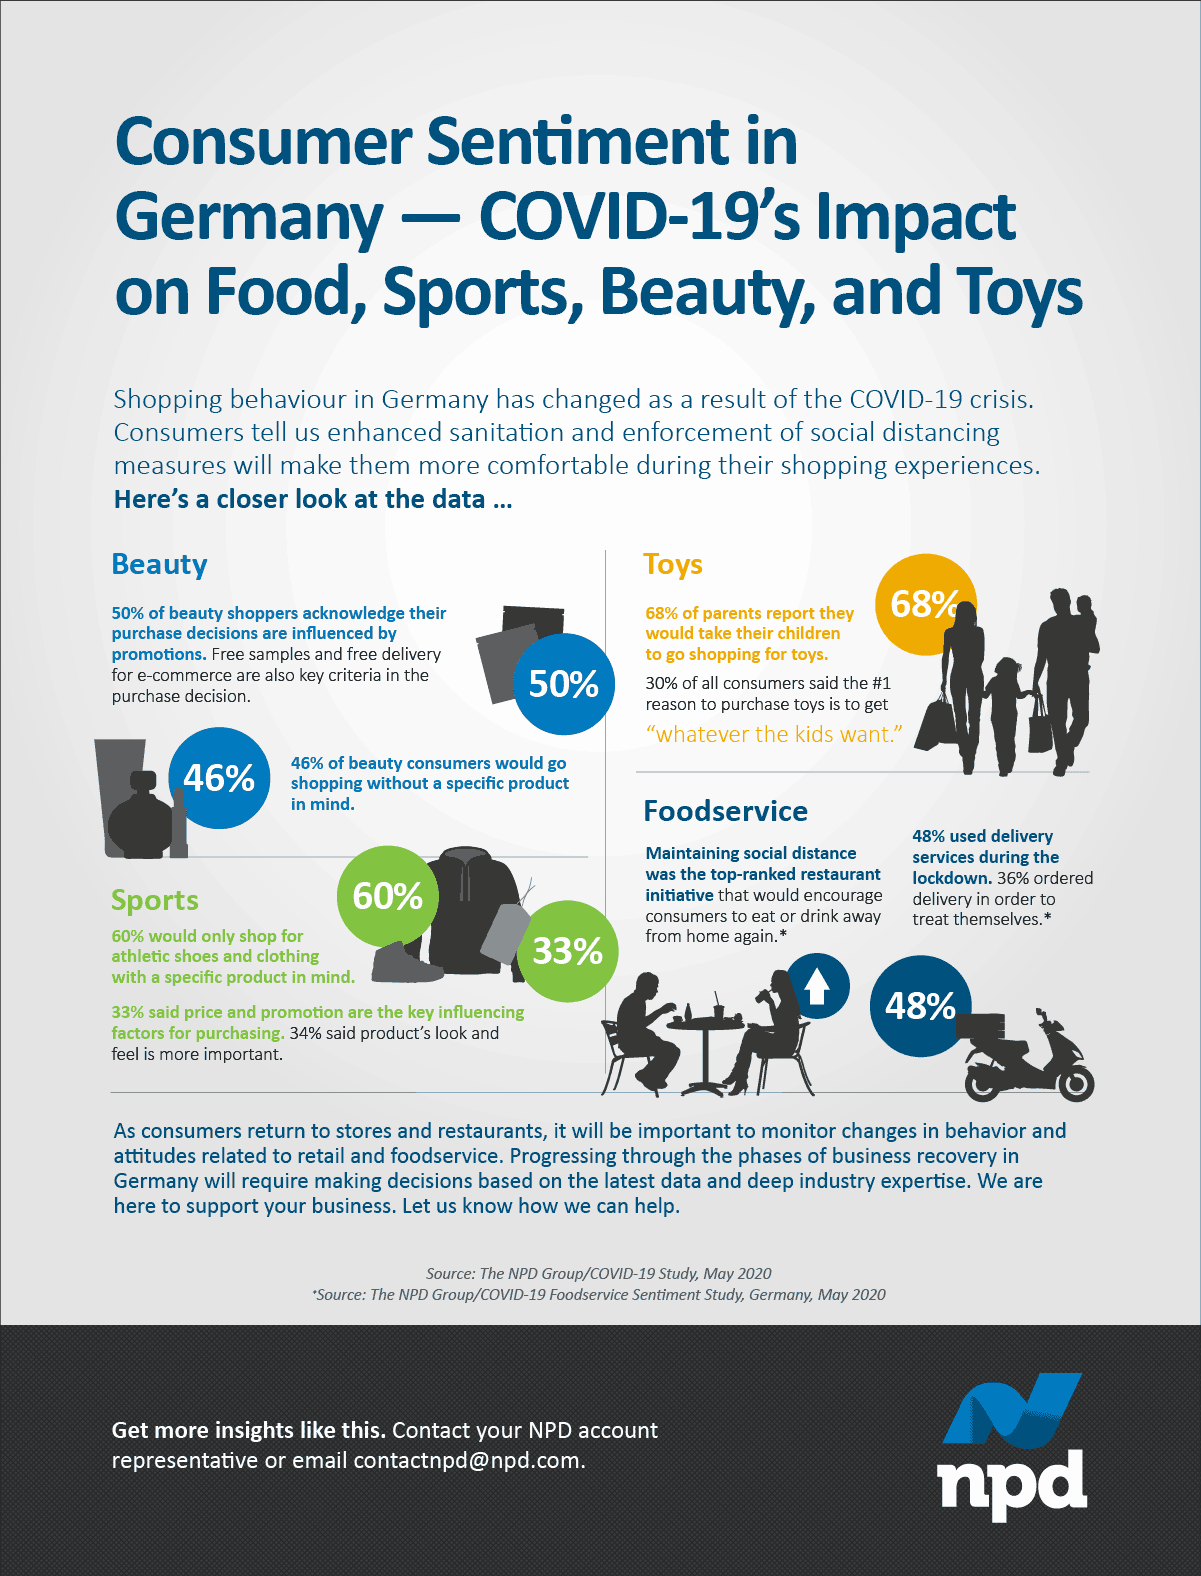 Shopping behaviour in Germany has changed as a result of the COVID-19 crisis. Consumers tell us enhanced sanitation and enforcement of social distancing measures will make them more comfortable during their shopping experiences.